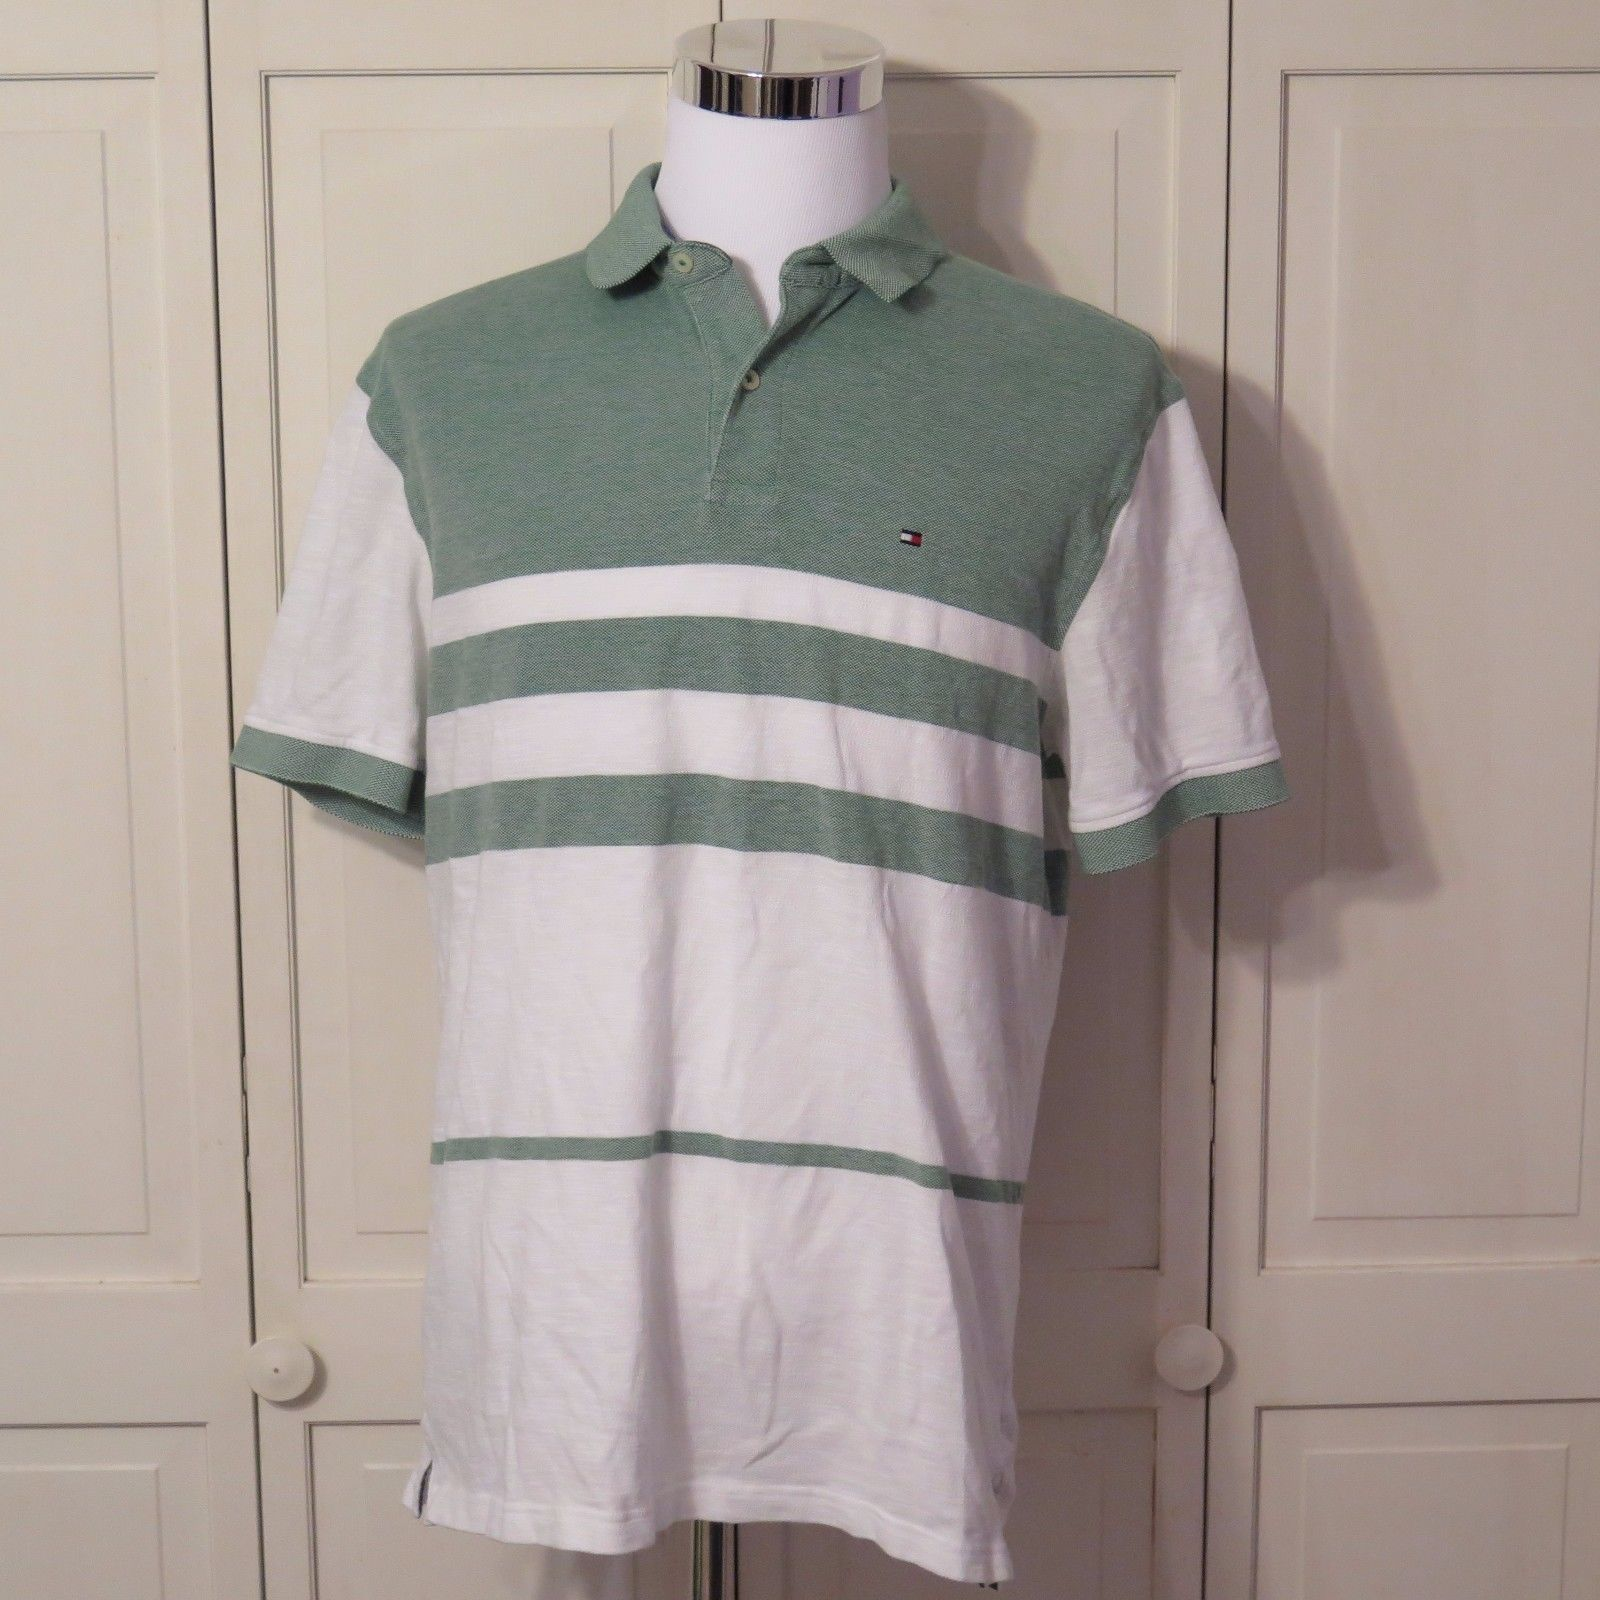 3f222e4ae765 S l1600. S l1600. Previous. TOMMY HILFIGER Mens Short Sleeve Polo Rugby Golf  Shirt White Green ...